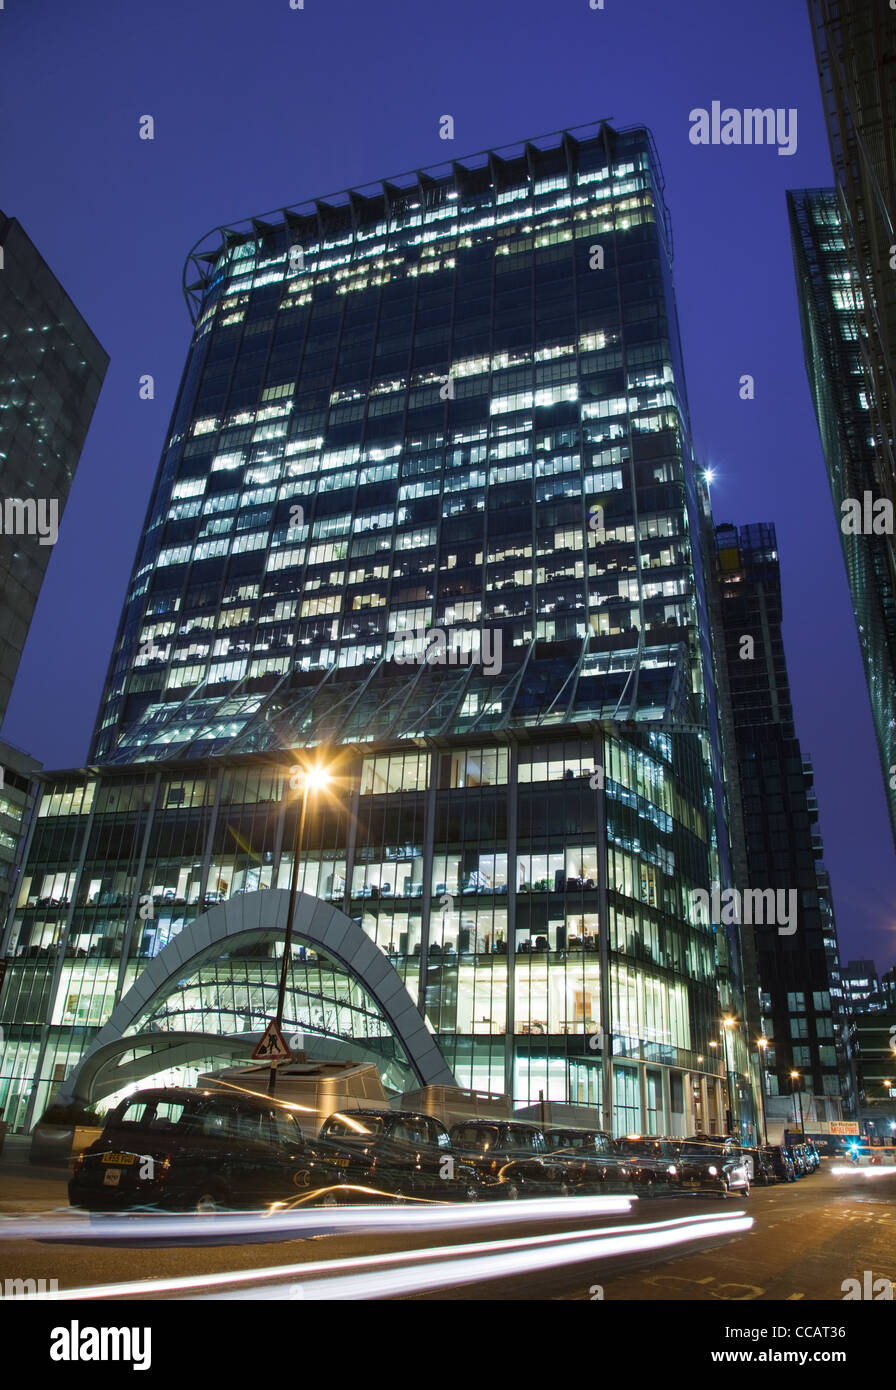 CityPoint Building in the City of London at dusk - Stock Image